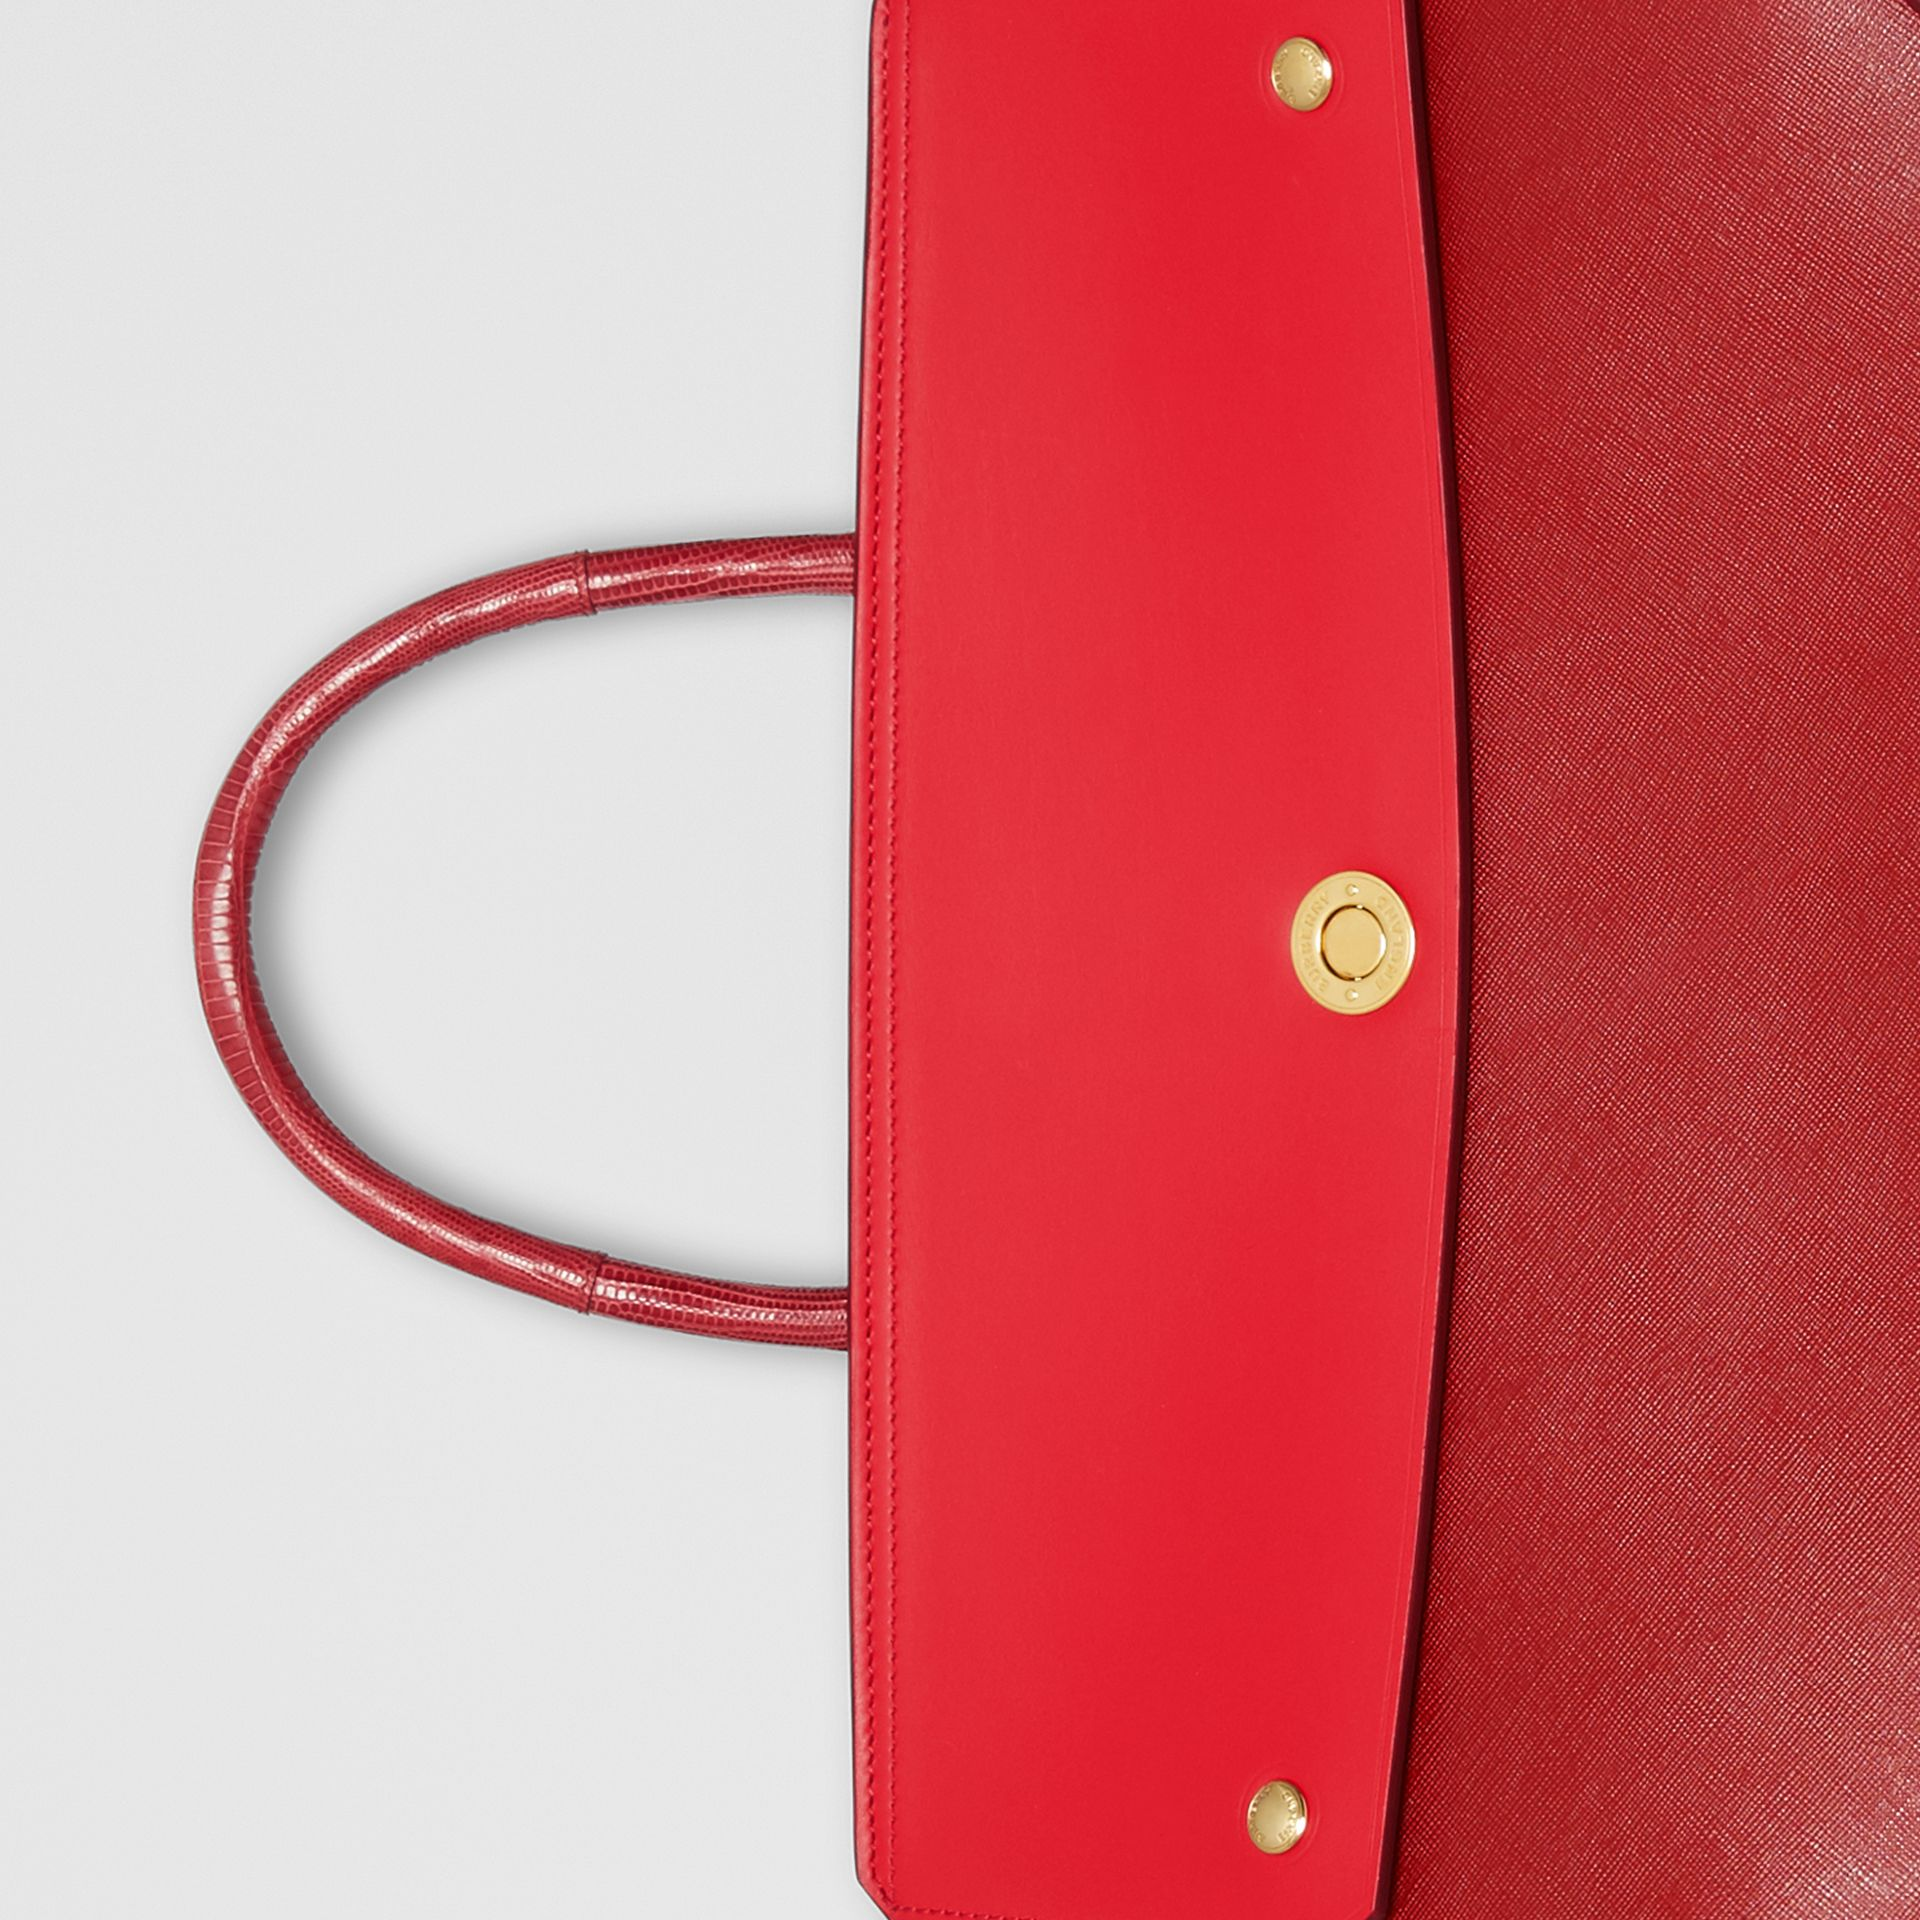 Small Leather and Suede Elizabeth Bag in Bright Military Red - Women | Burberry - gallery image 1